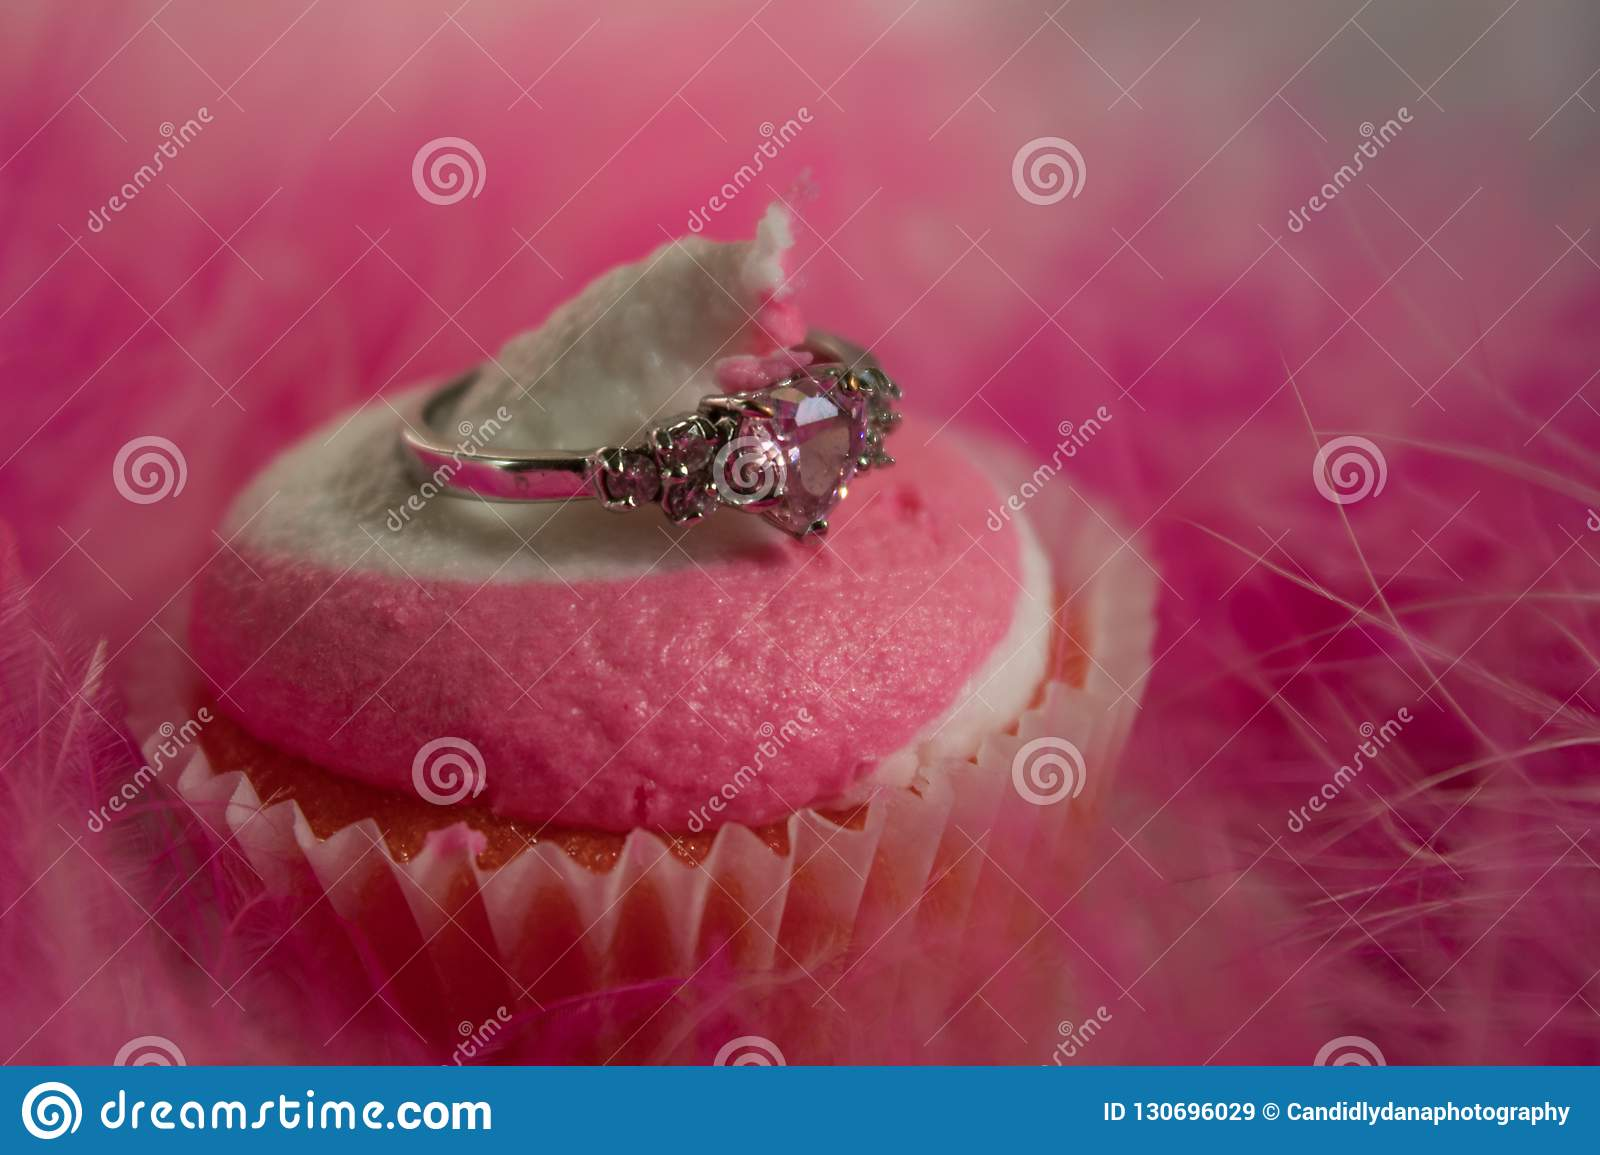 Pink Swirl Cupcake and a Heart Ring